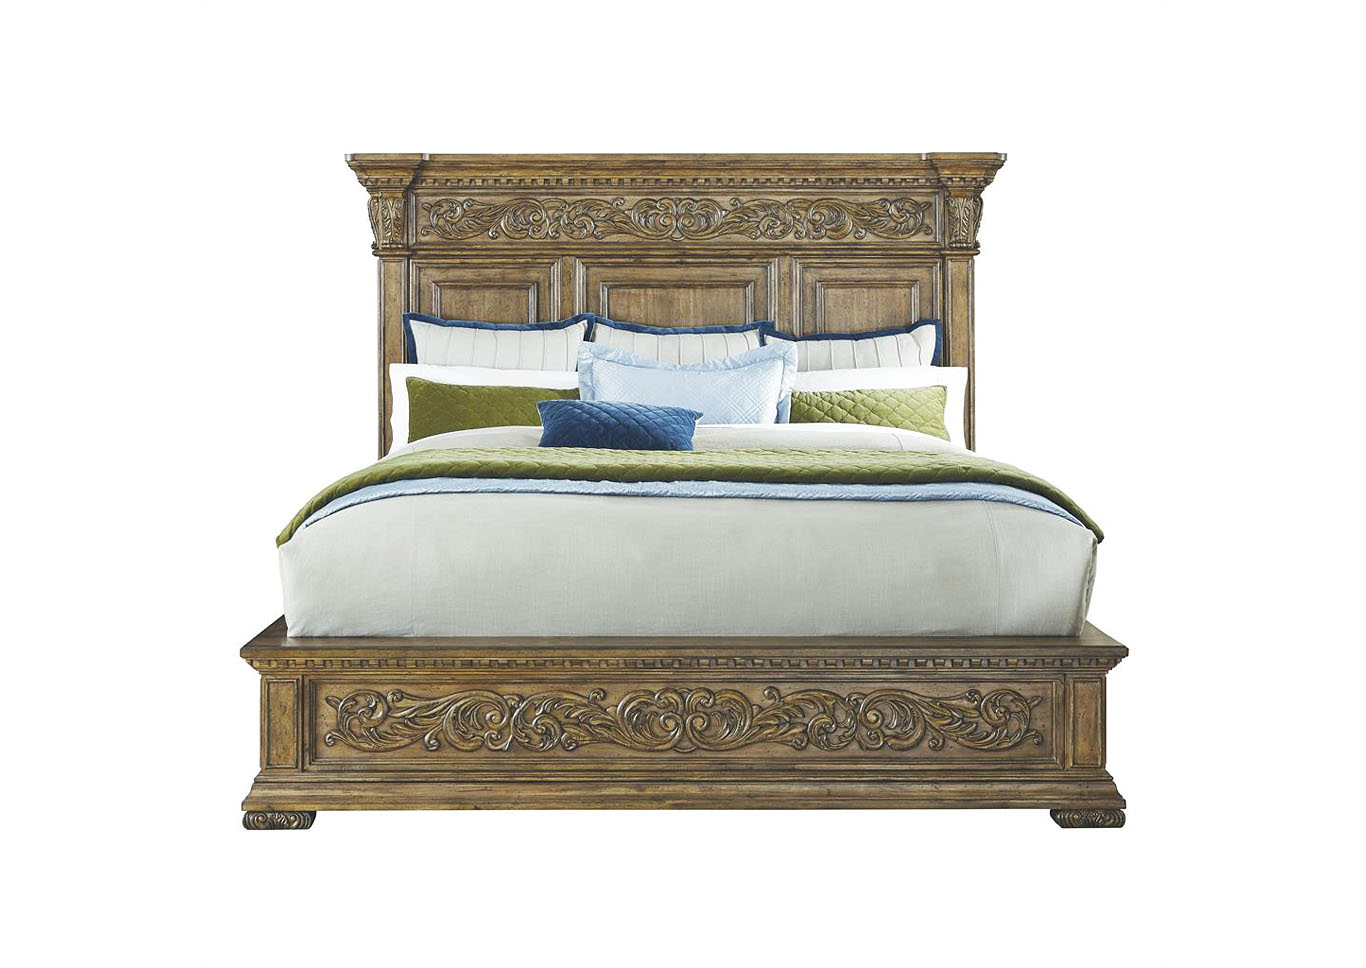 Stratton Queen Carved Platform Bed,Pulaski Furniture